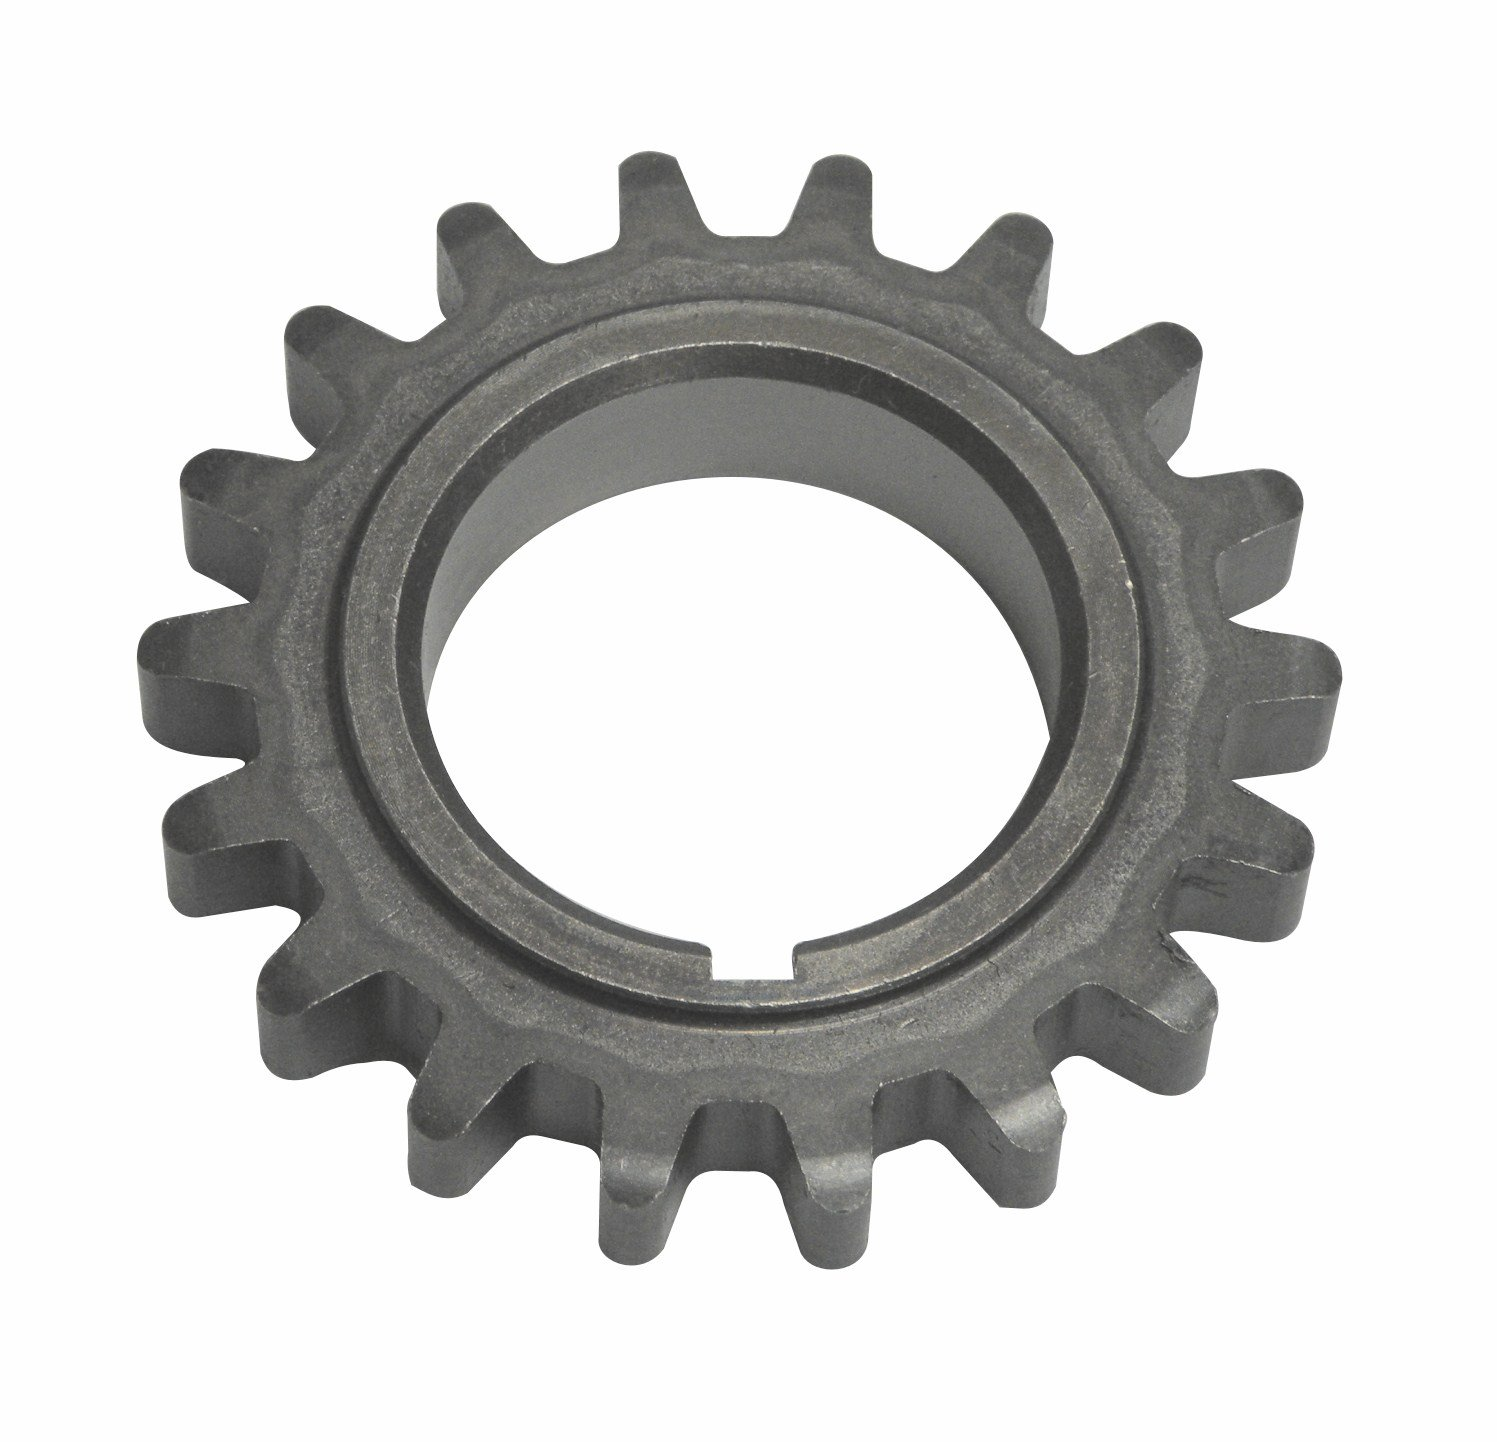 Melling 365 Timing Chain